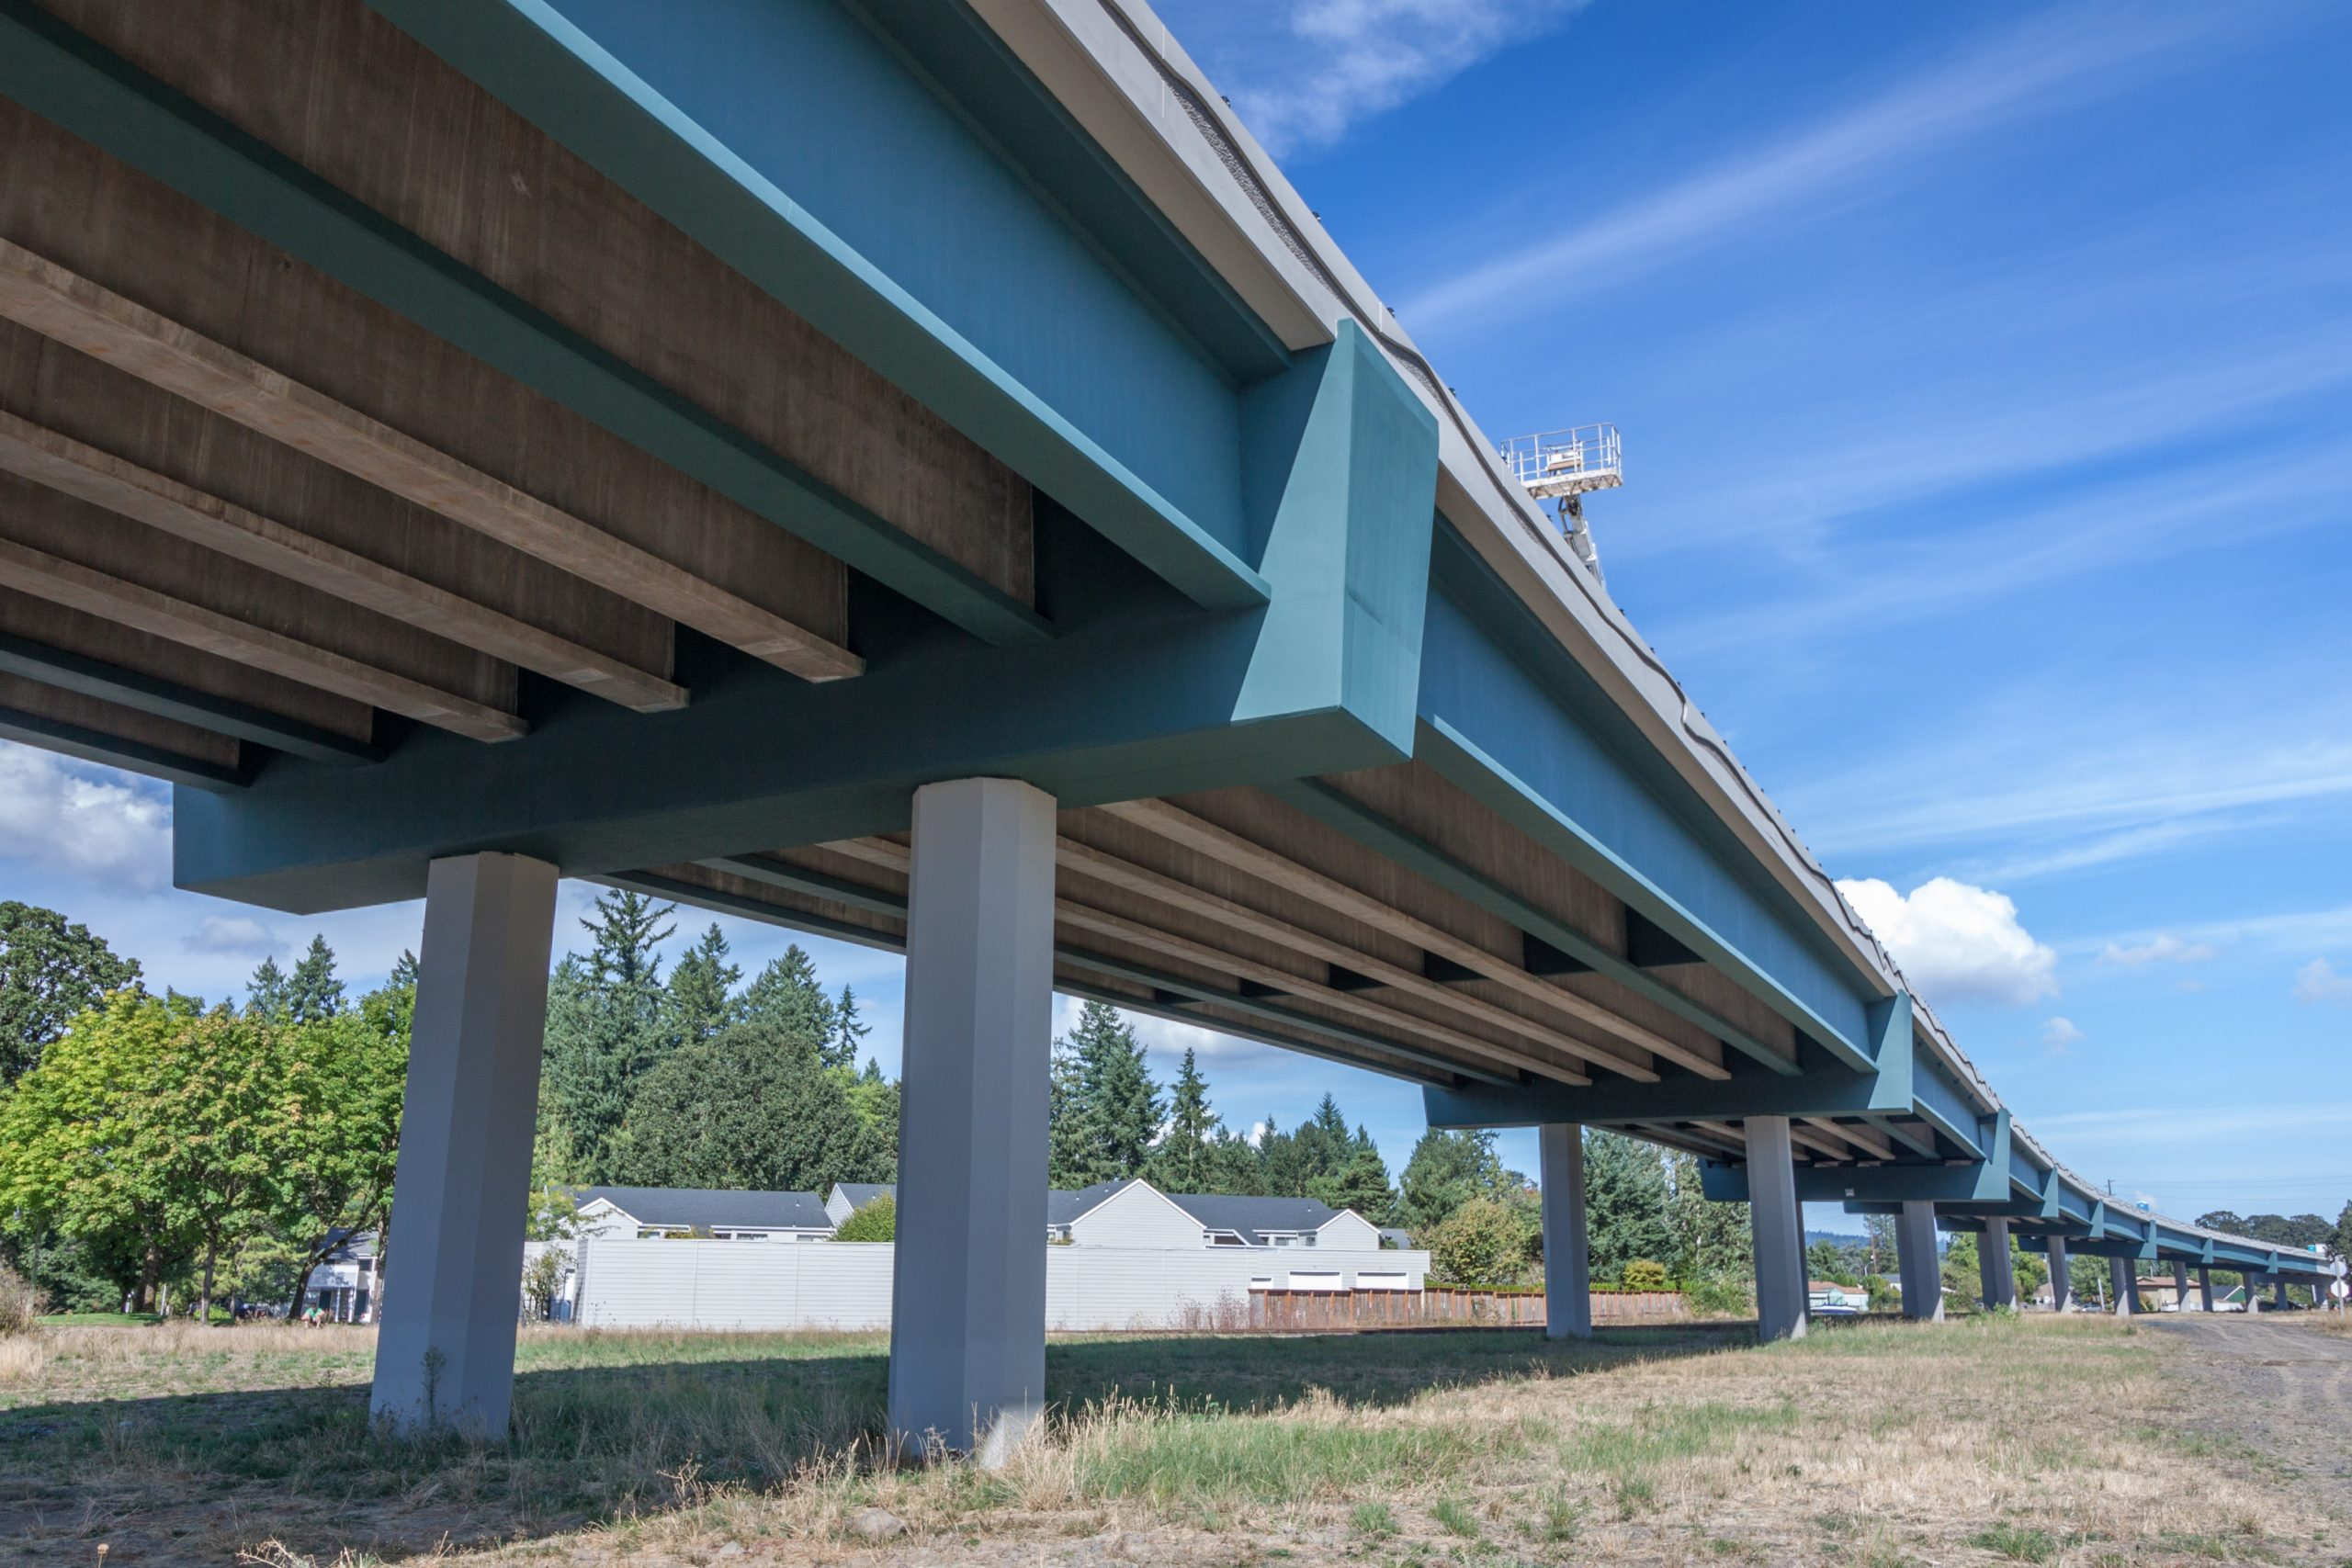 Newberg-Dundee Bypass Phase 1